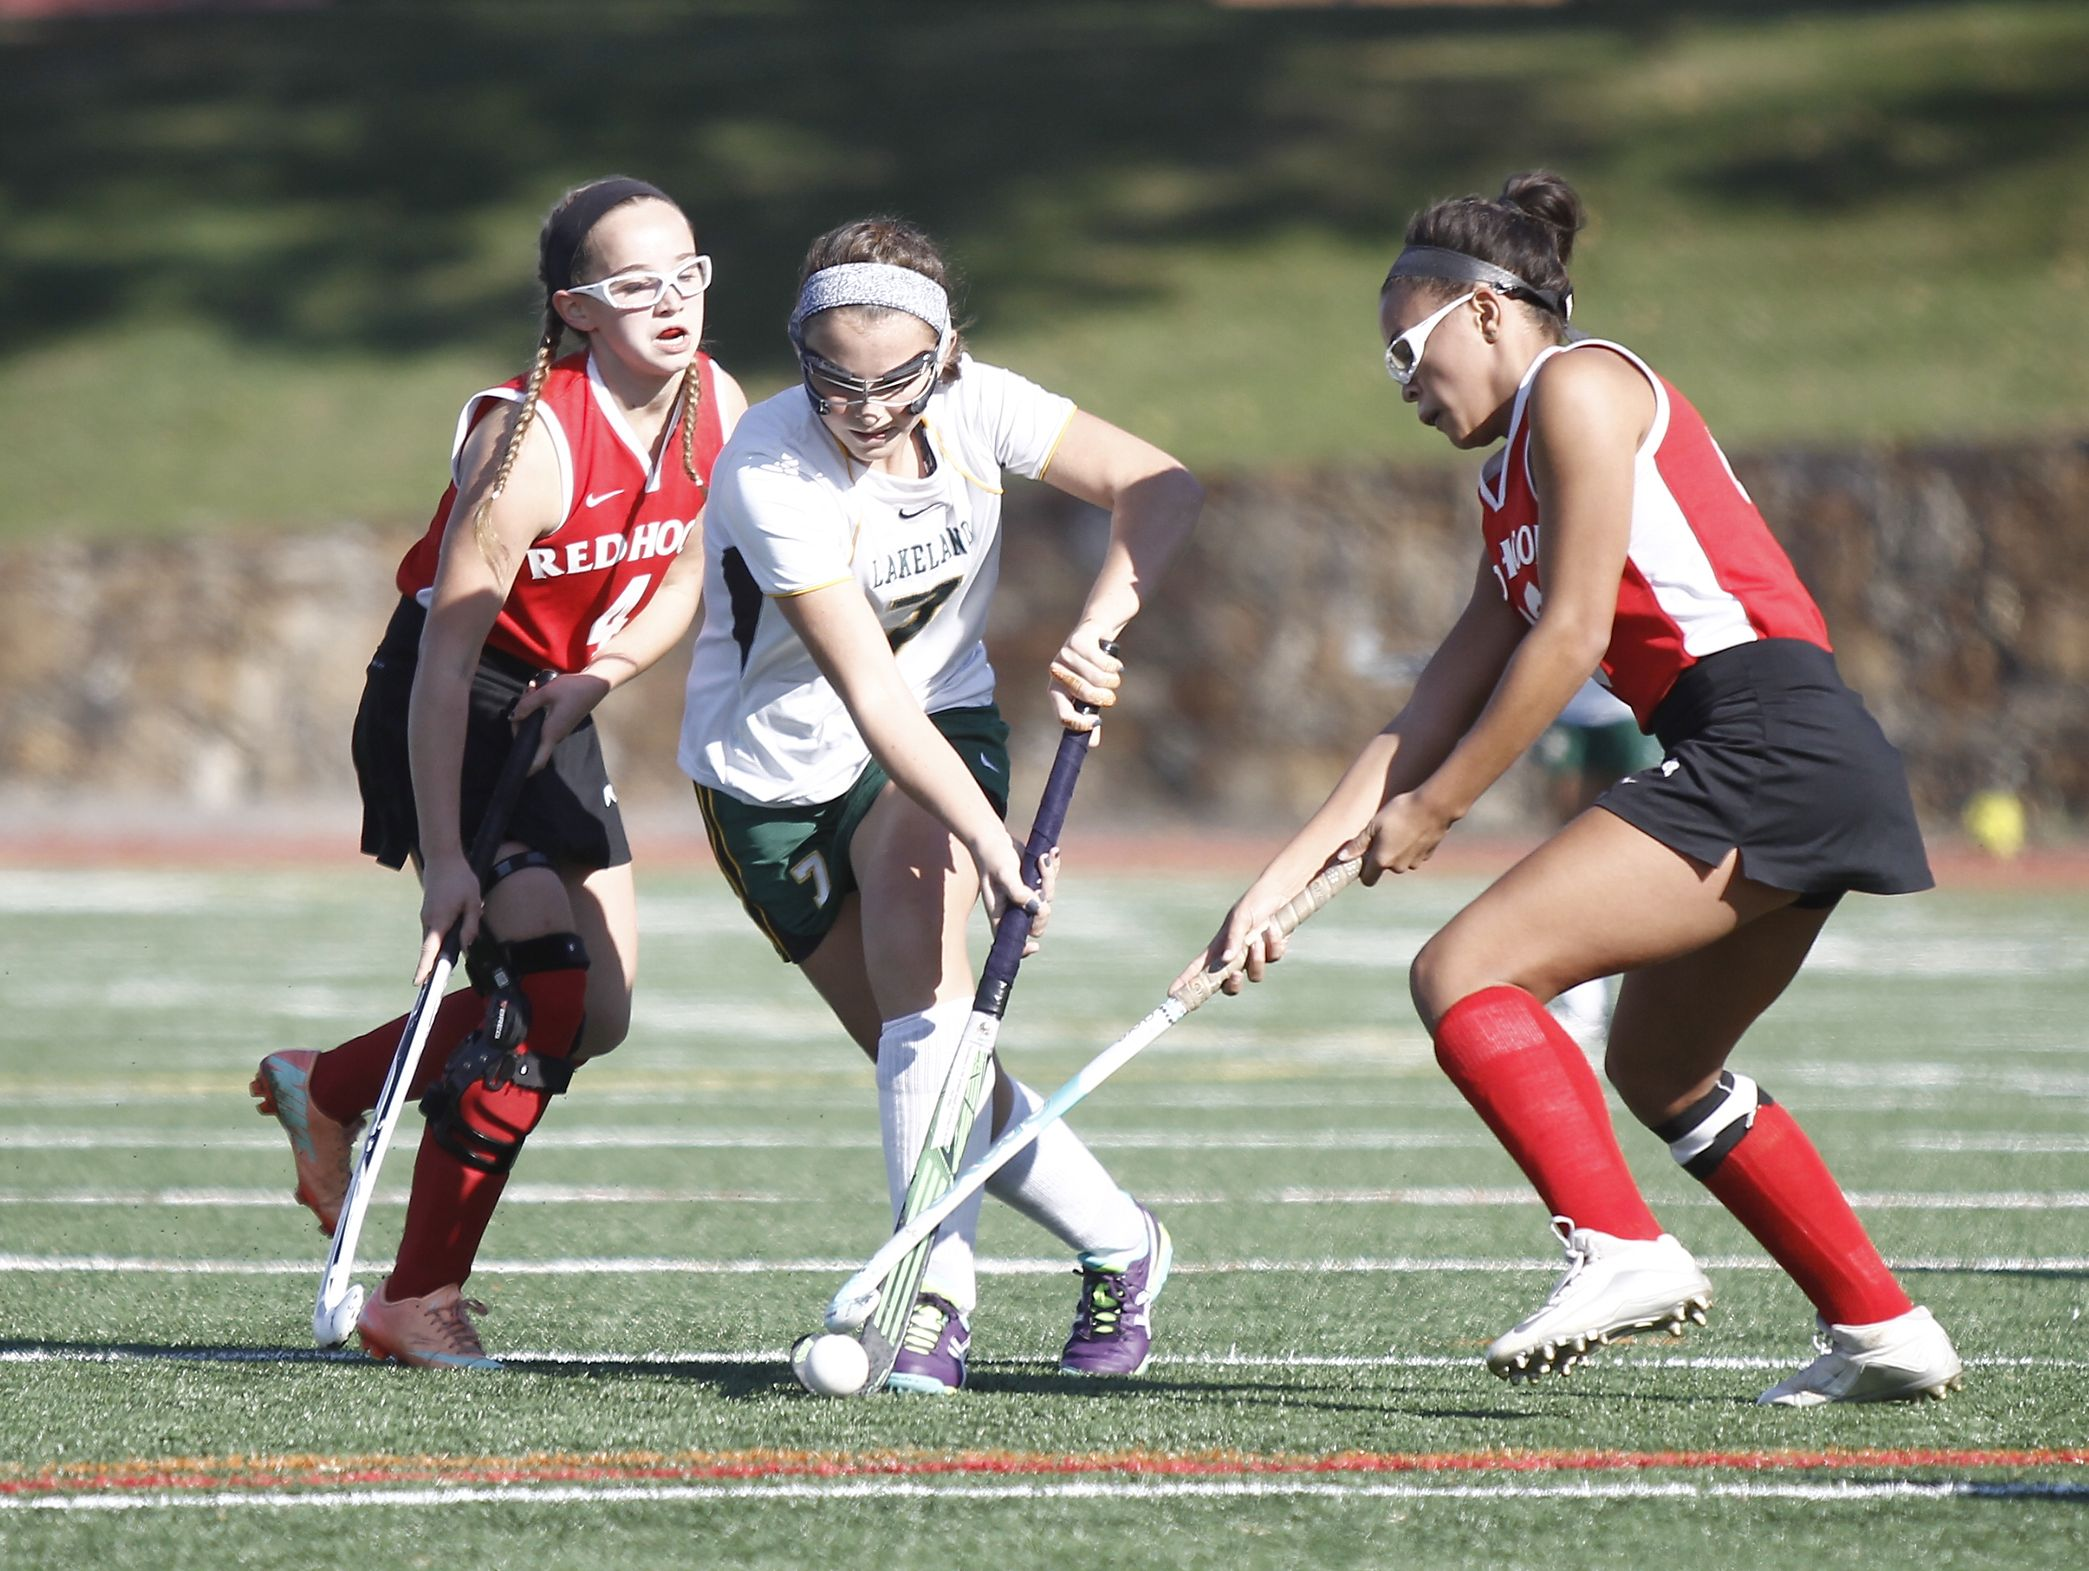 Lakeland's Caroline Cahill (7) splits the Red Hook defense during their 8-0 win in the Class B regional championship field hockey game at Valhalla High School on Saturday, November 5, 2016.